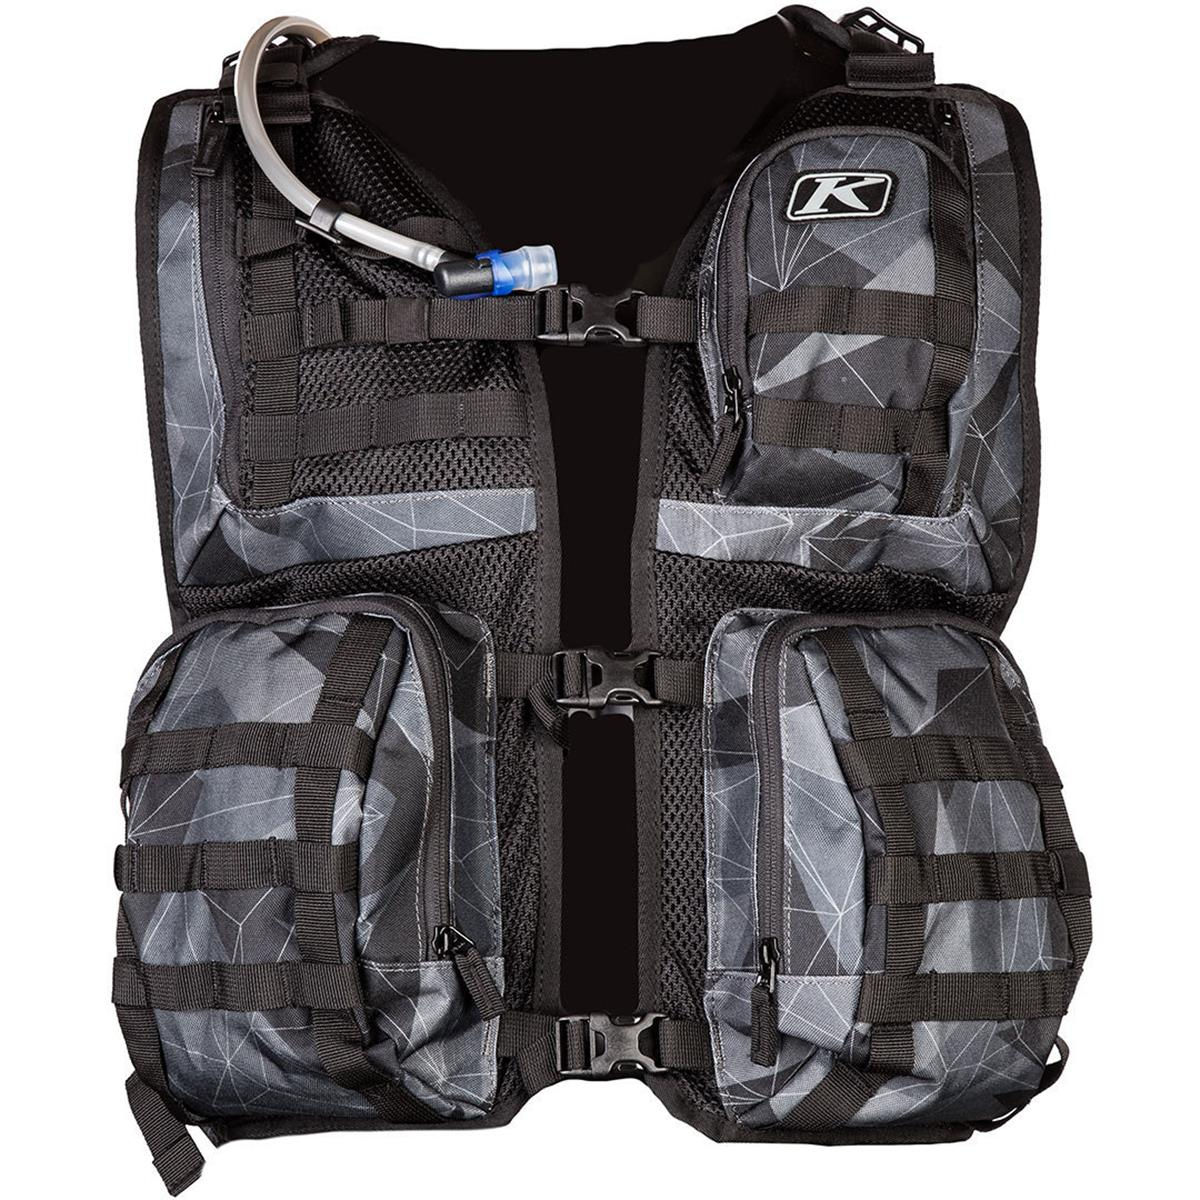 Klim Multifunktionsweste Arsenal mit Trinksystem, Camo